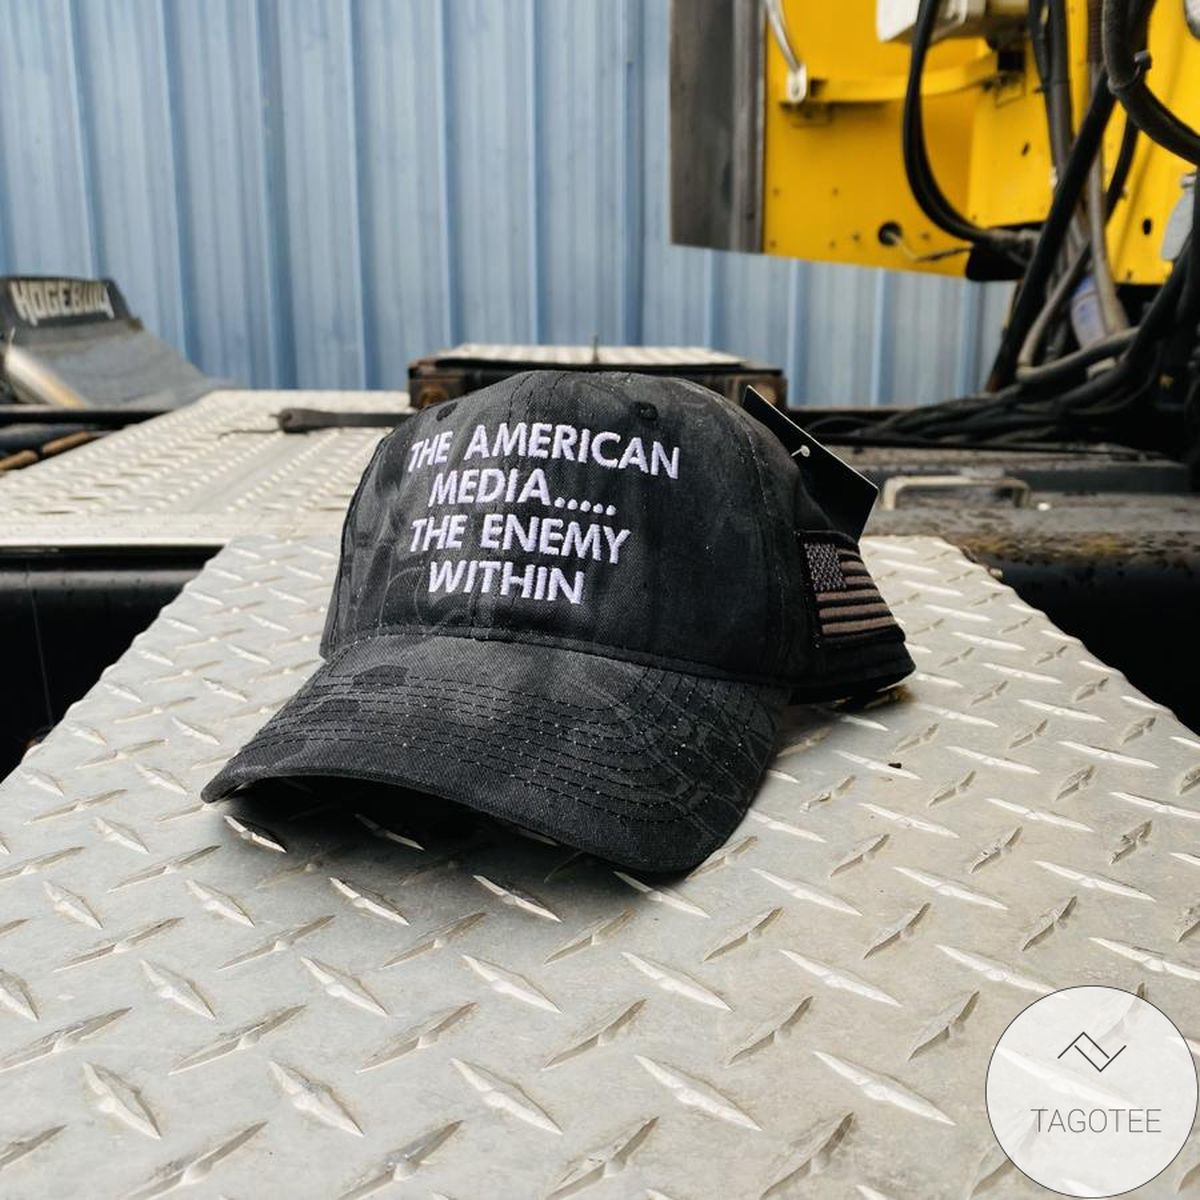 The American Media The Enemy Within Hat